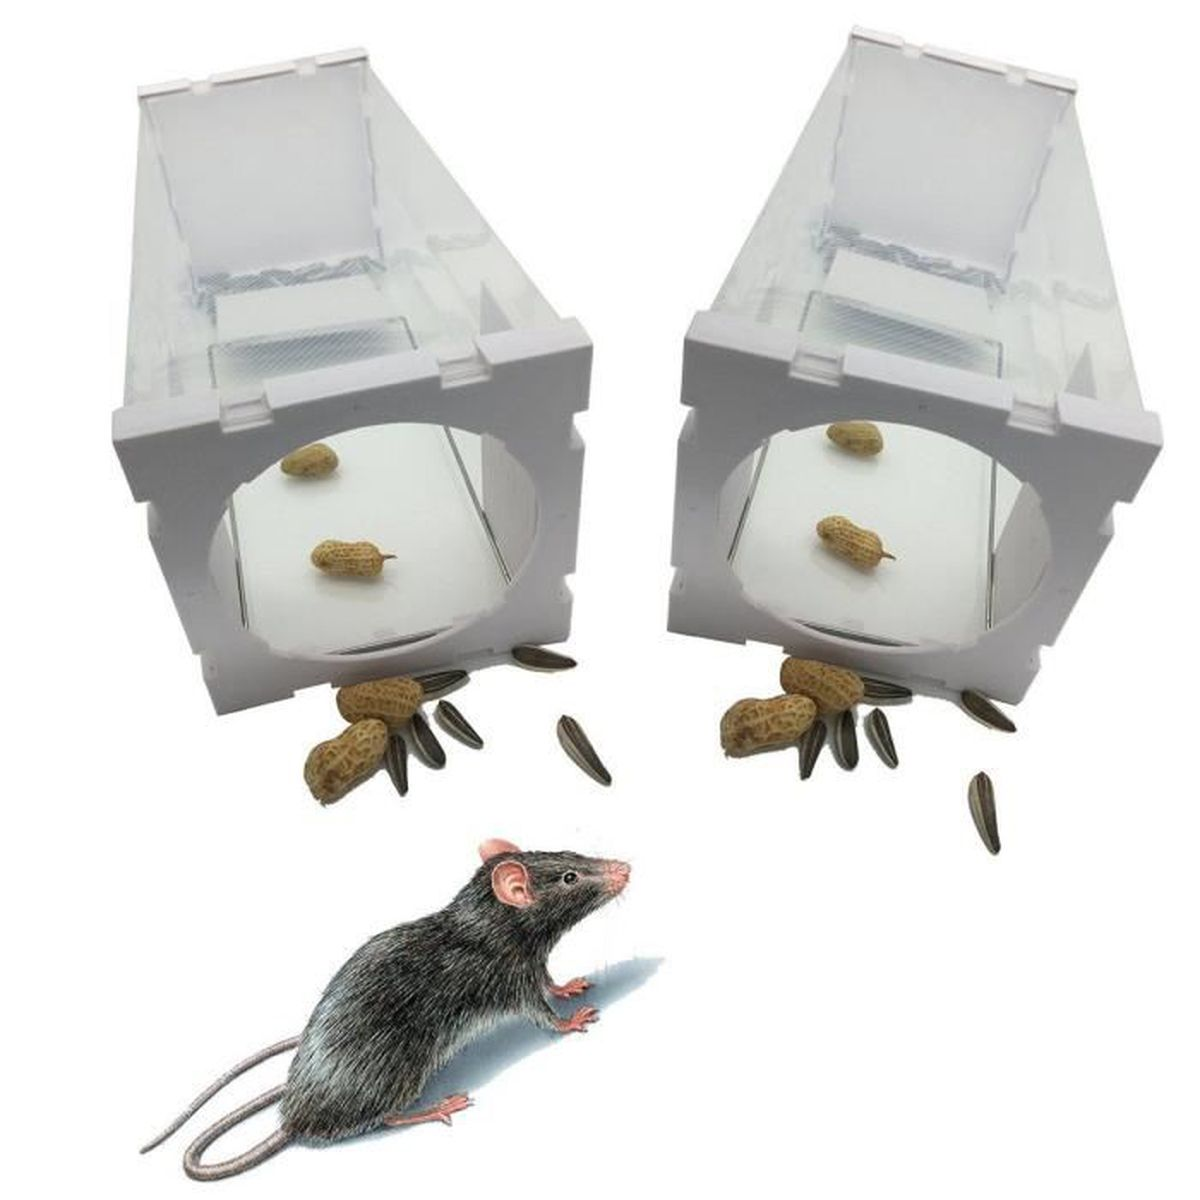 nasse rats pi ge souris rongeurs cage nuisibles rati re grillage mouse attrape achat vente. Black Bedroom Furniture Sets. Home Design Ideas